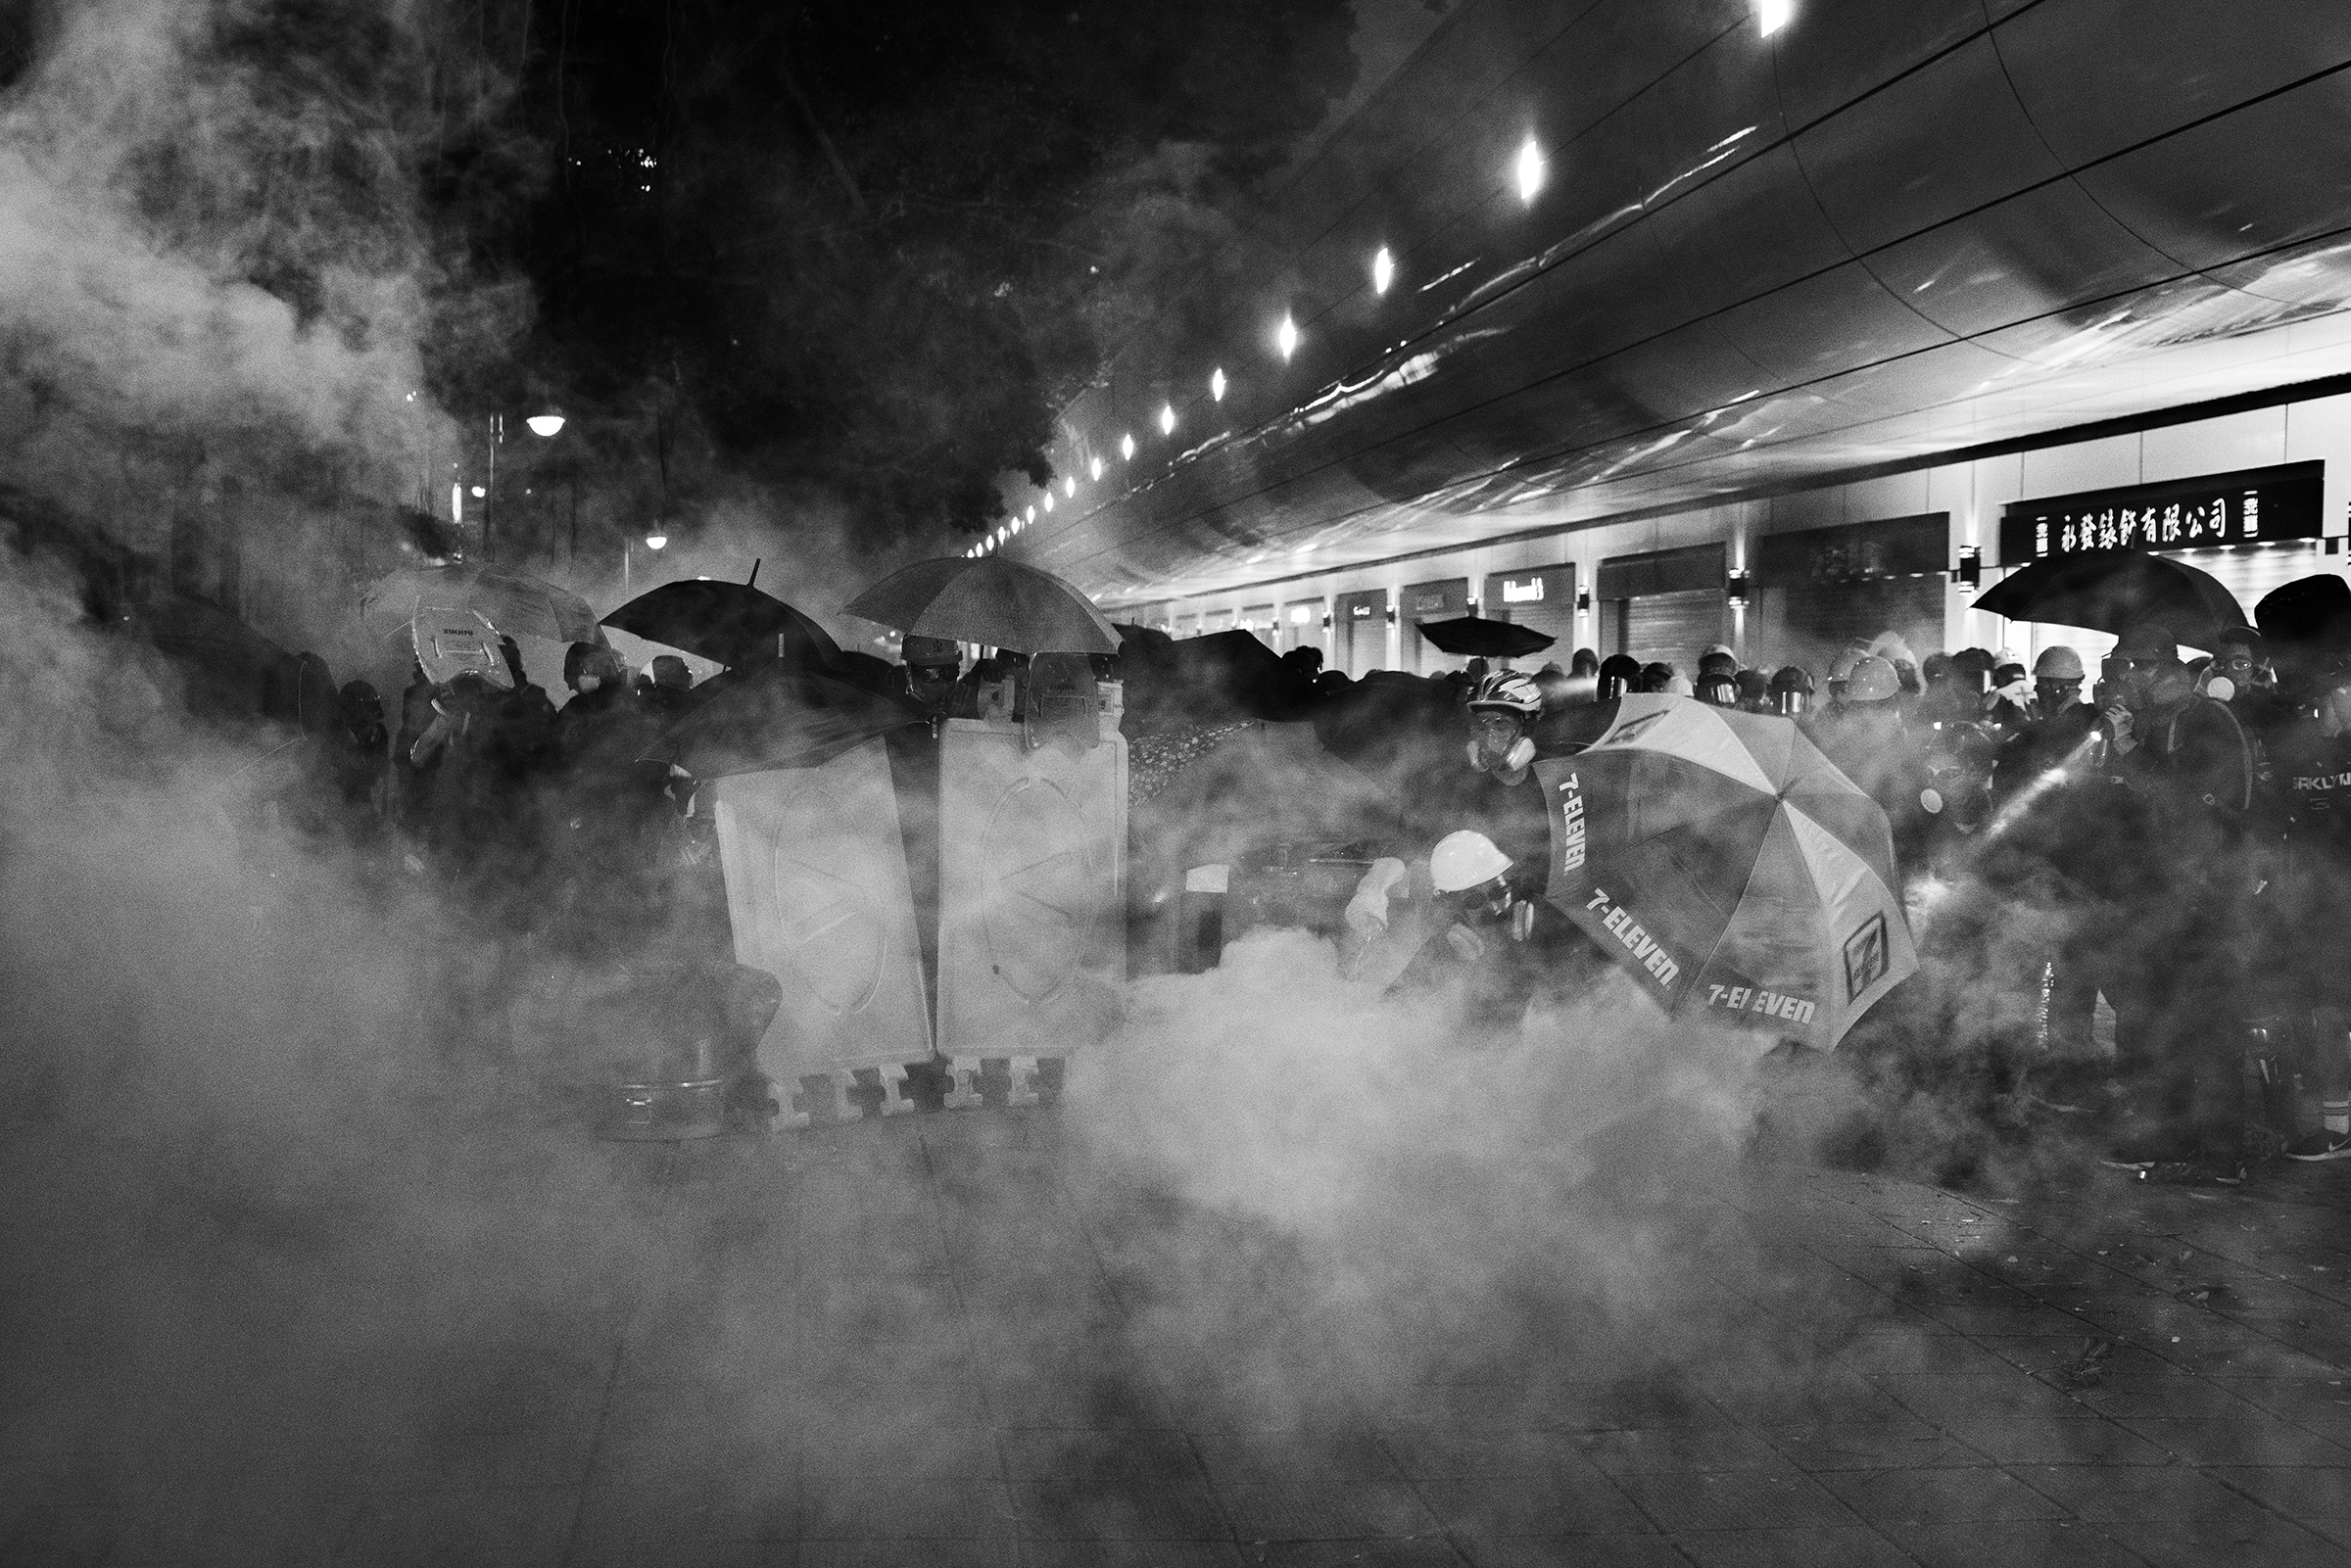 Protesters are tear-gassed by riot police near the Tsim Sha Tsui police station in Kowloon, Hong Kong, on Aug. 11.